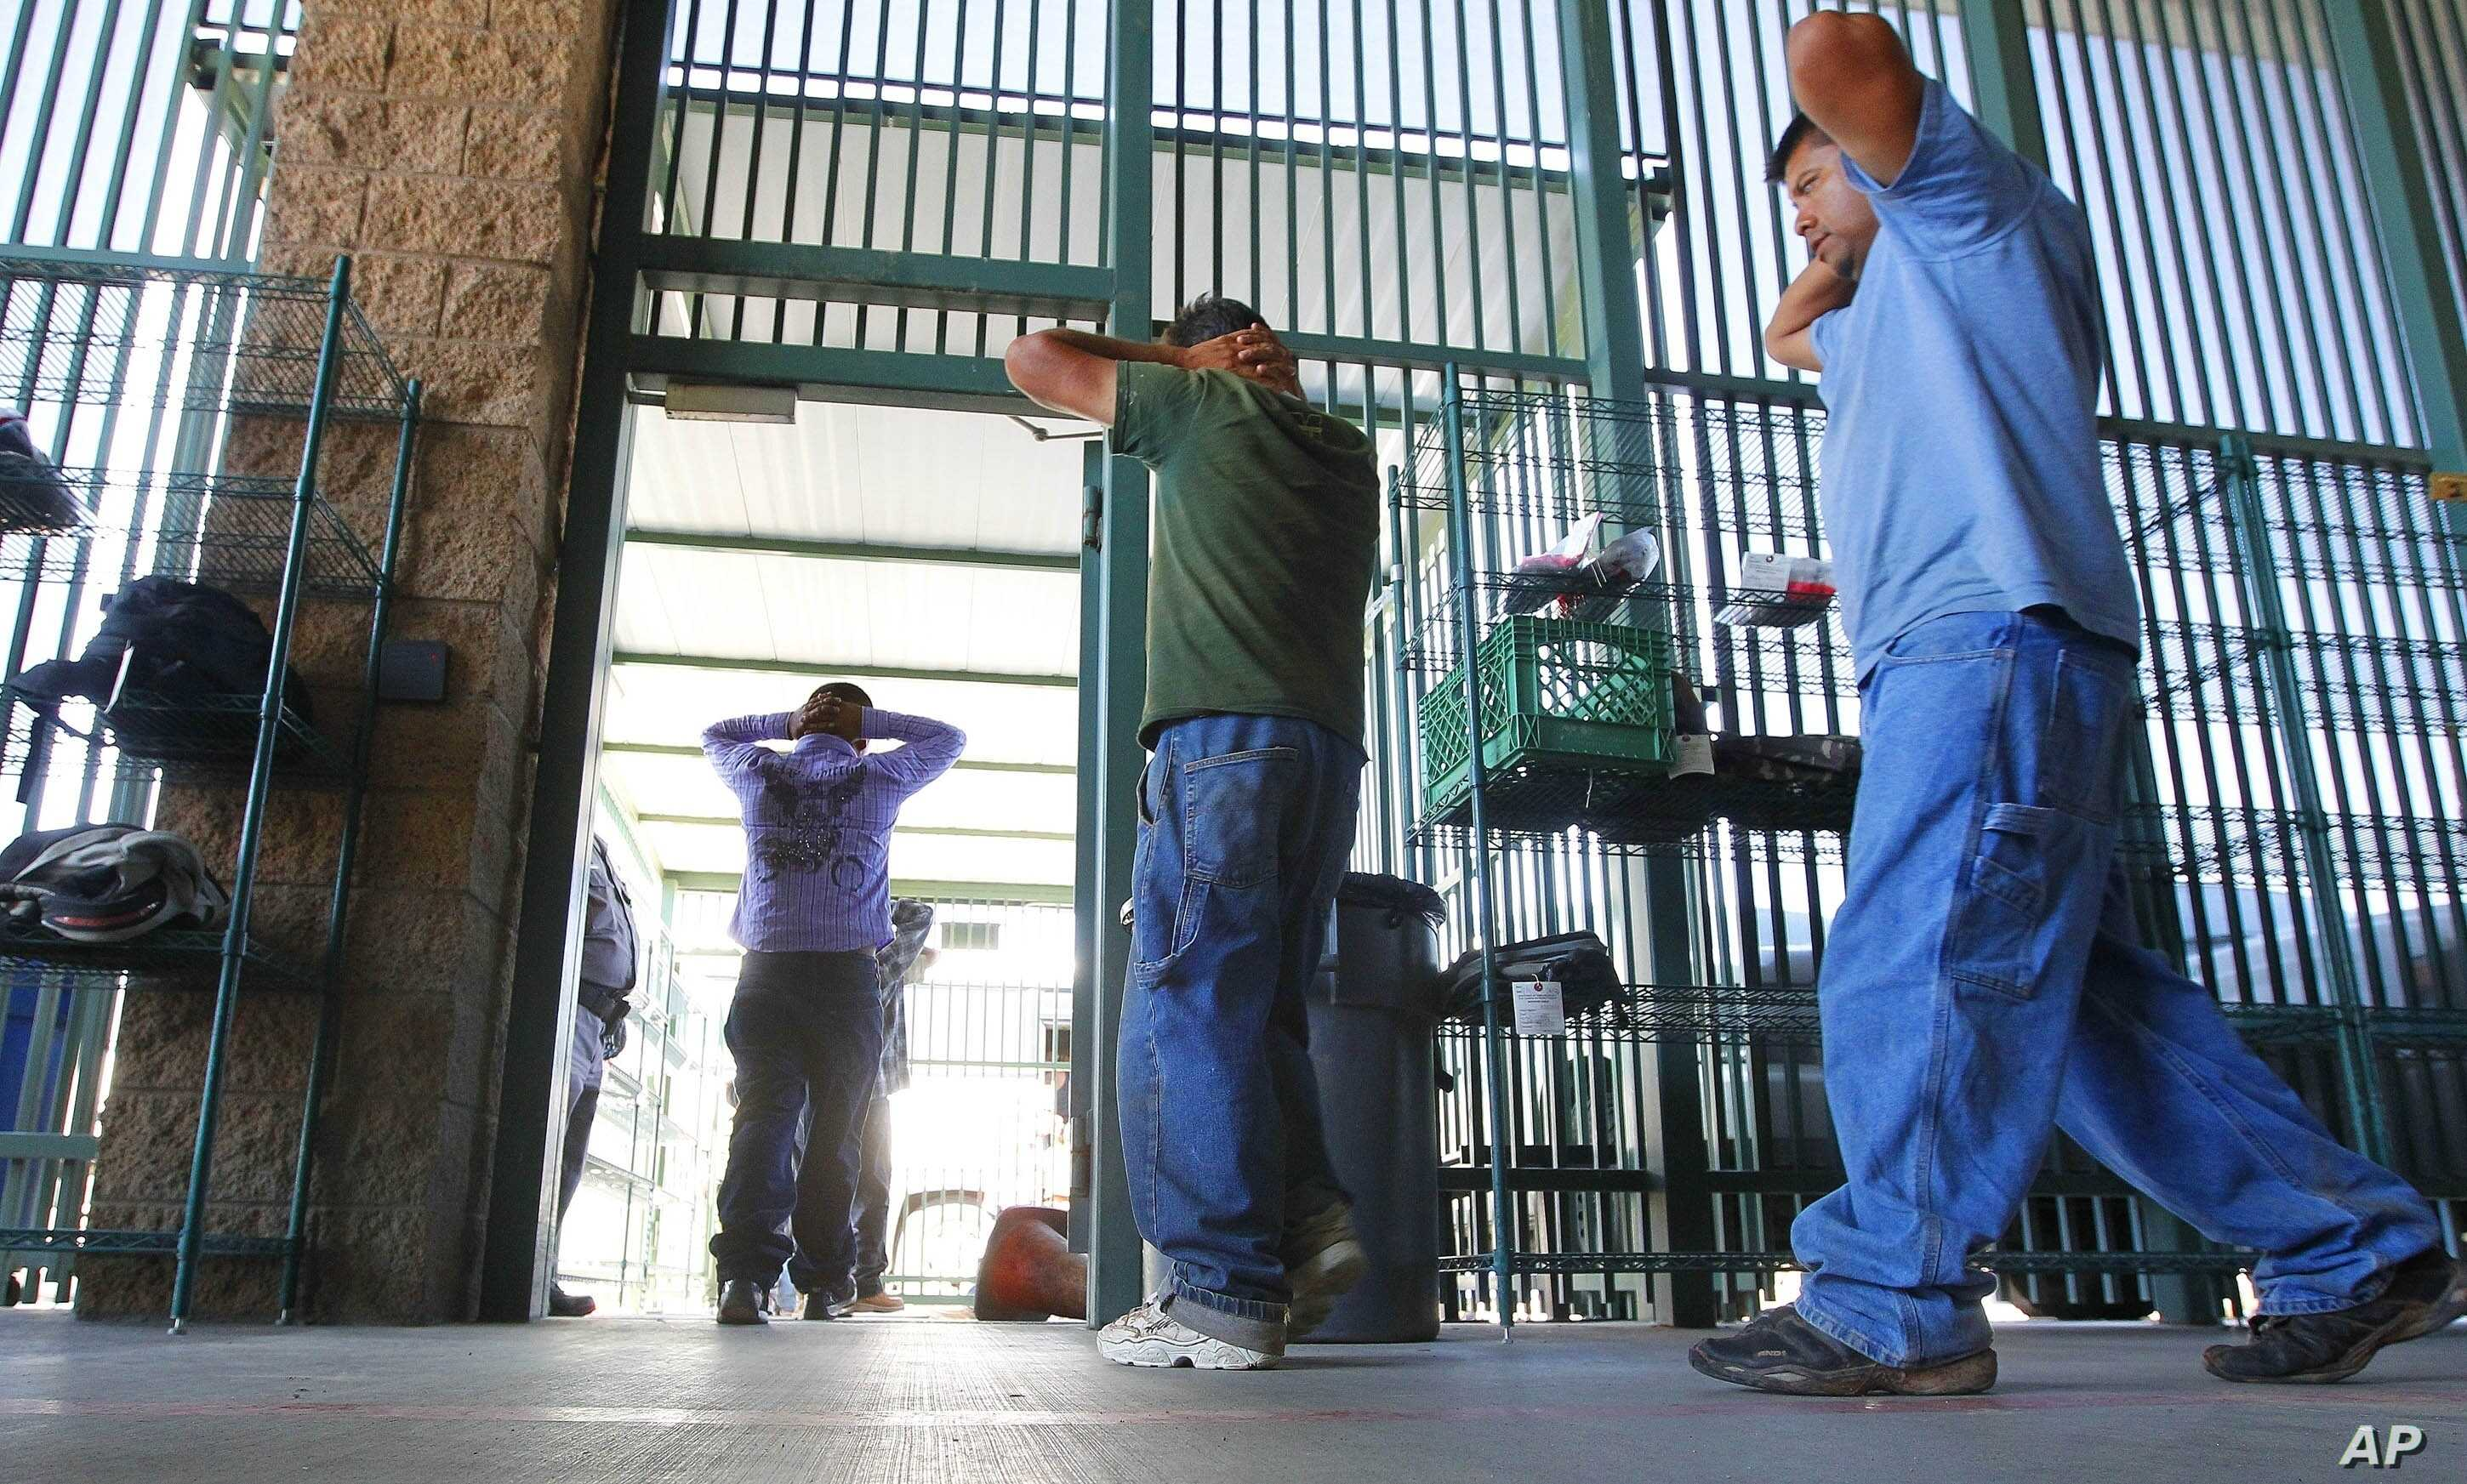 US Inspectors Alarmed Over Conditions at Immigrant Detention